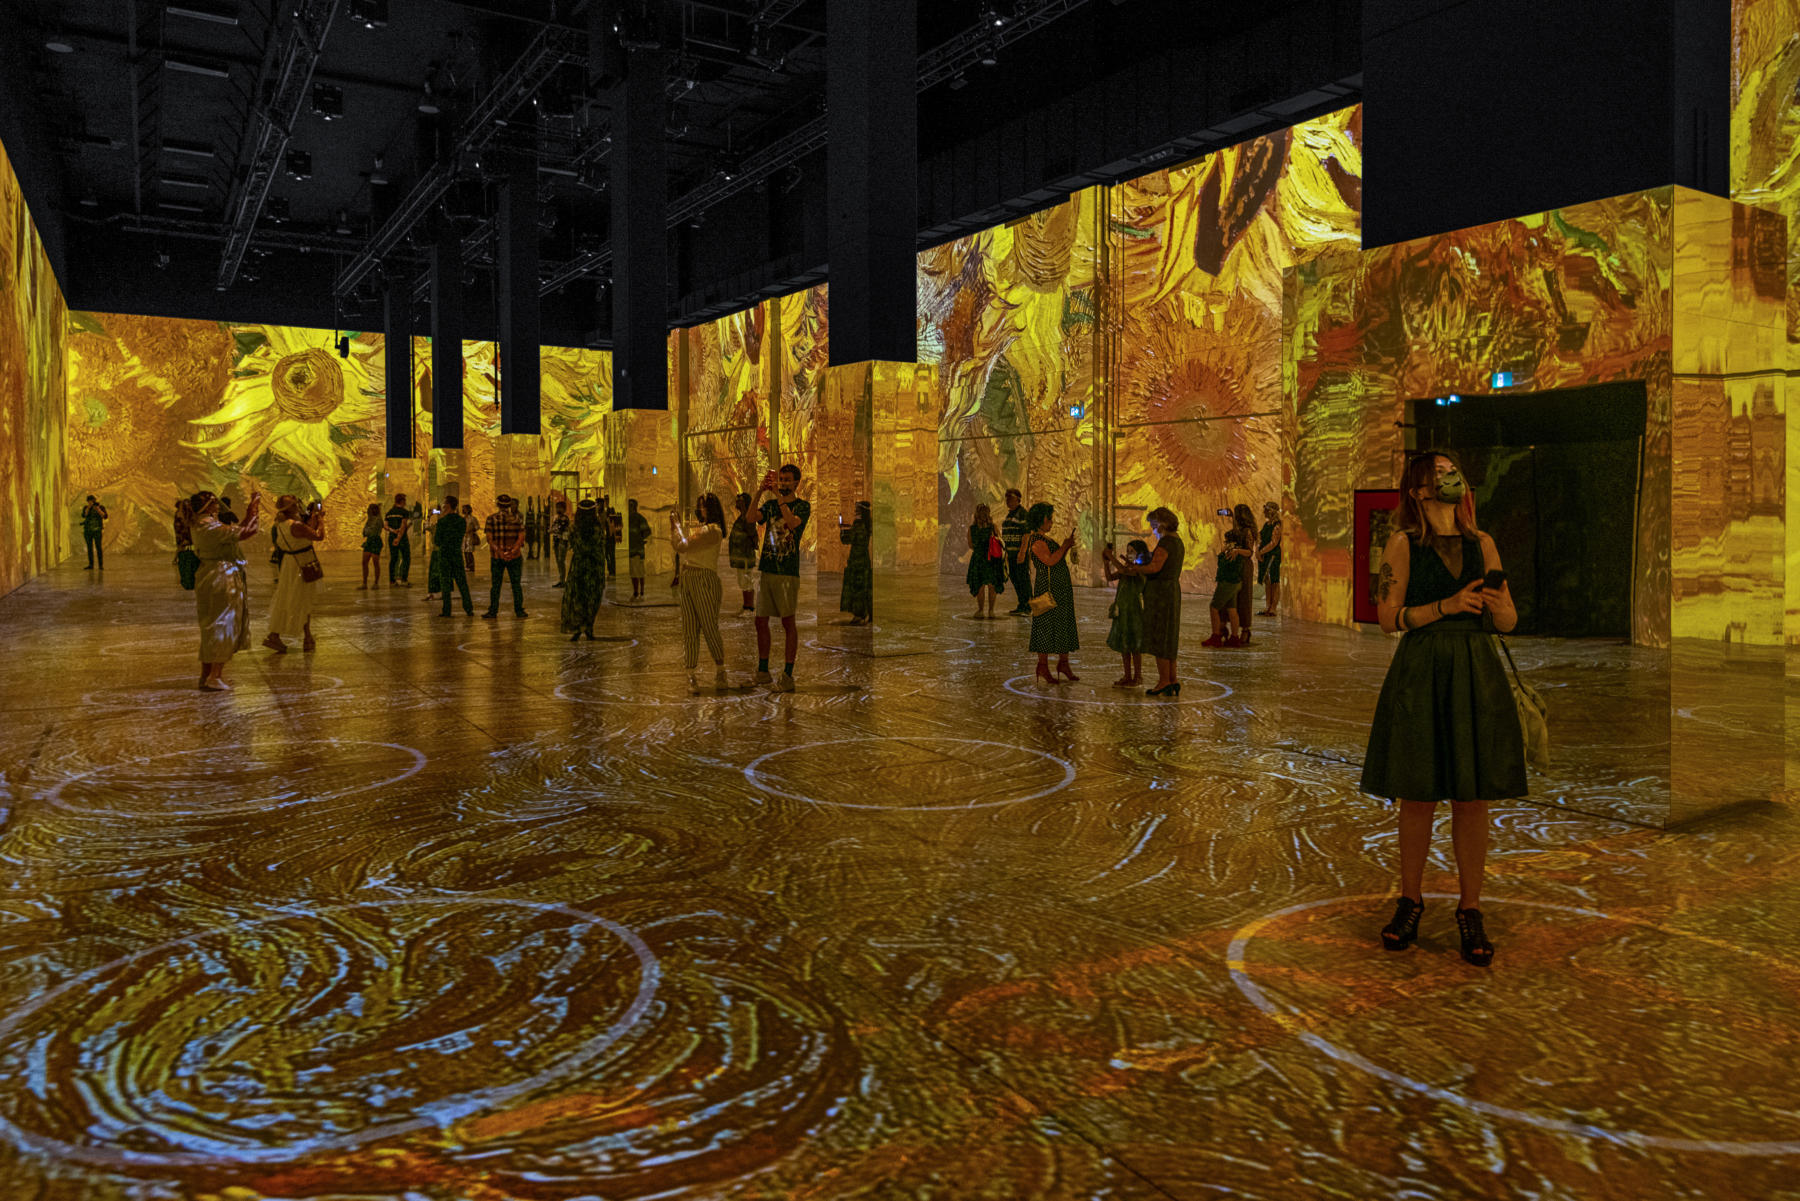 Get your tickets now for this immersive Van Gogh exhibit